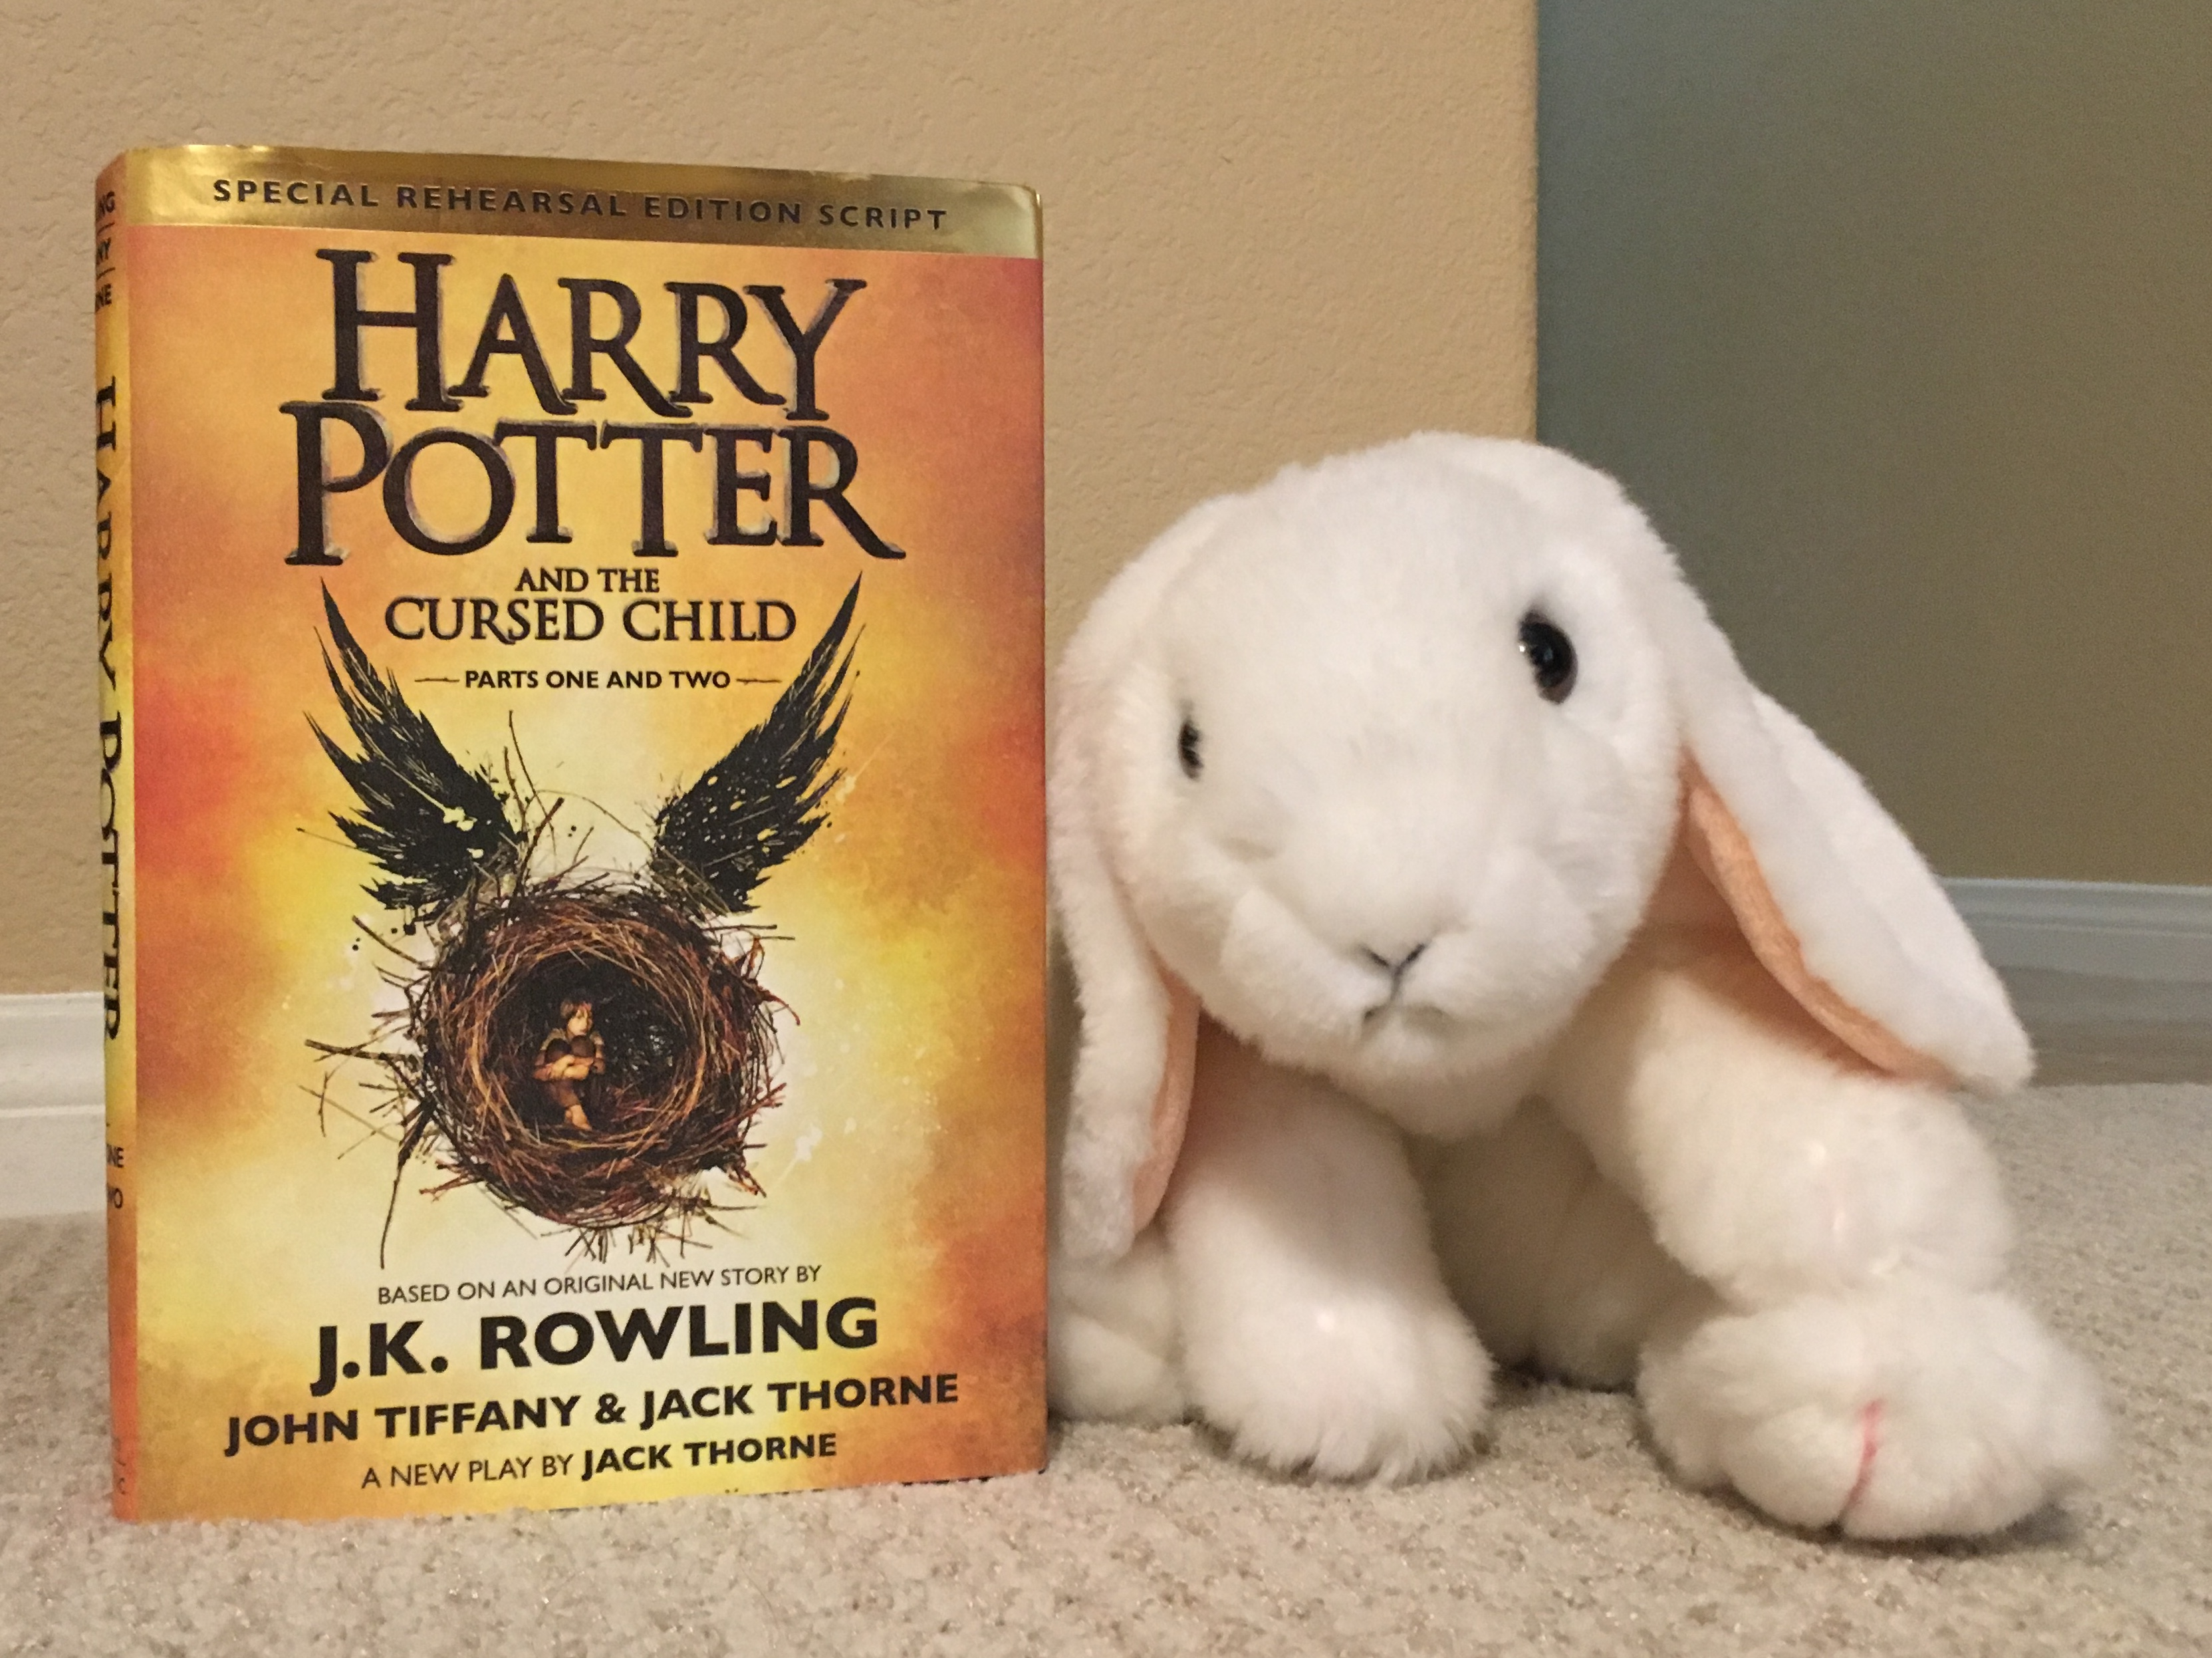 Marshmallow S First Review Harry Potter And The Cursed Child By J K Rowling Bookbunnies Harry potter, school, aesthetic ~ durmstrang found in norway or sweden when the witches want to bring on thunder, they plunge their hands in the water in a certain way. j k rowling